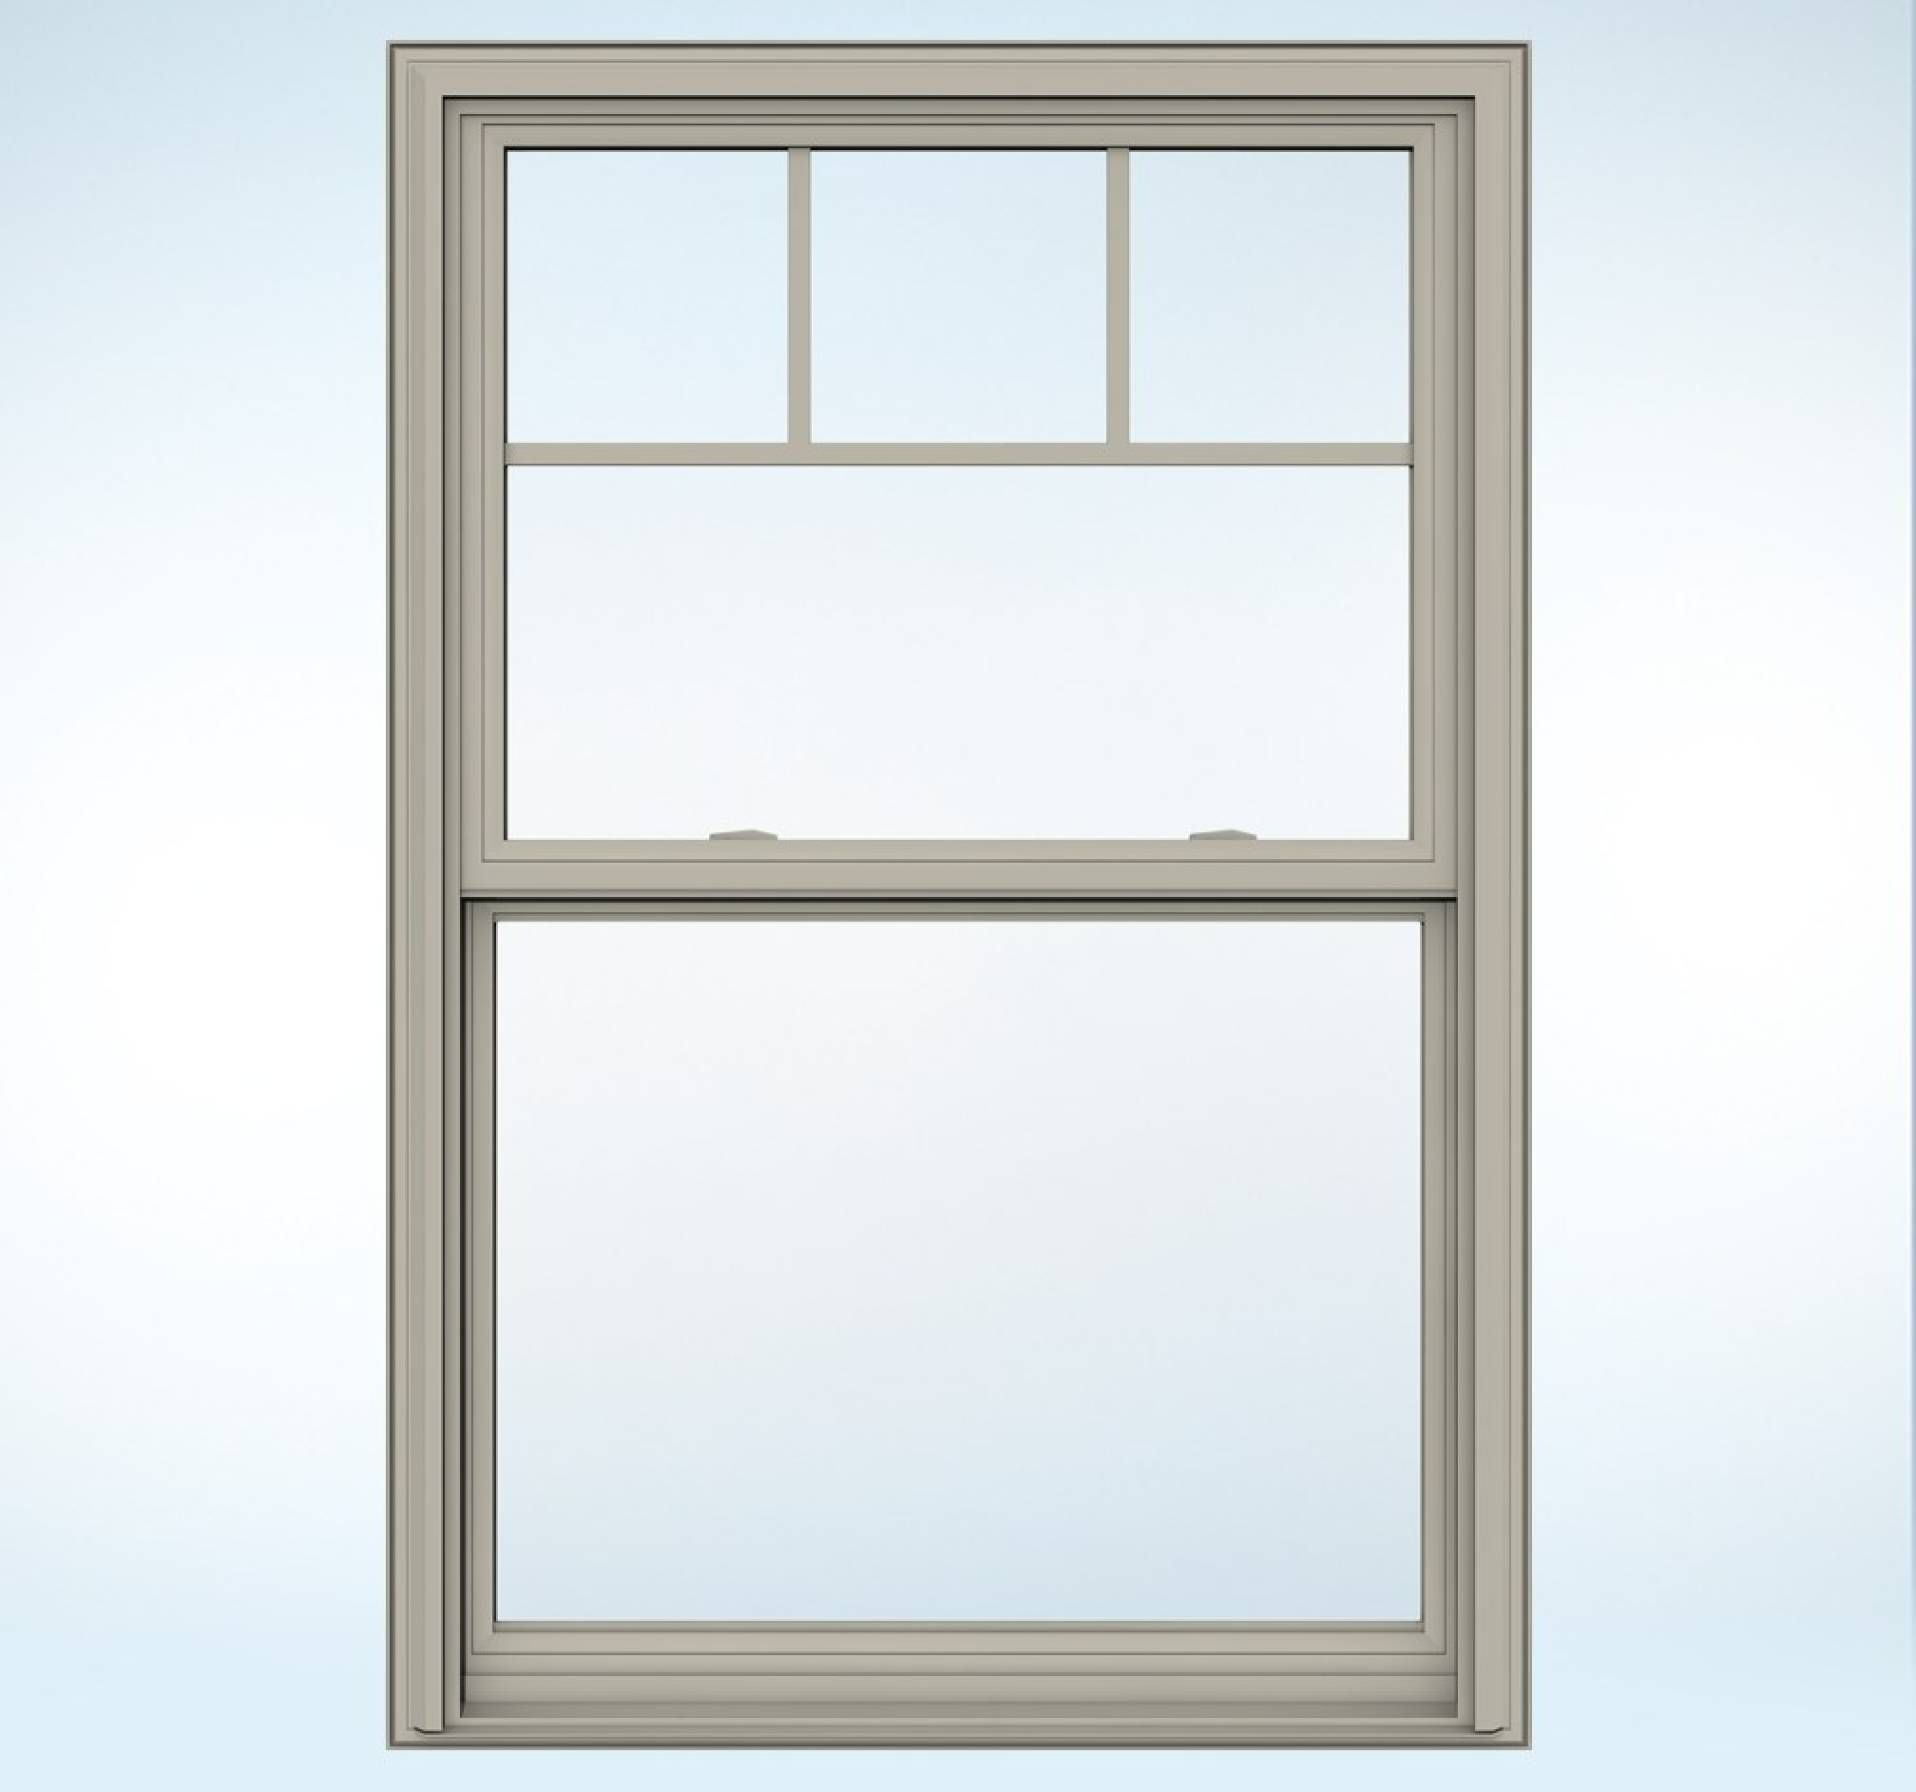 Builders Vinyl (V-2500) | JELD-WEN Doors & Windows